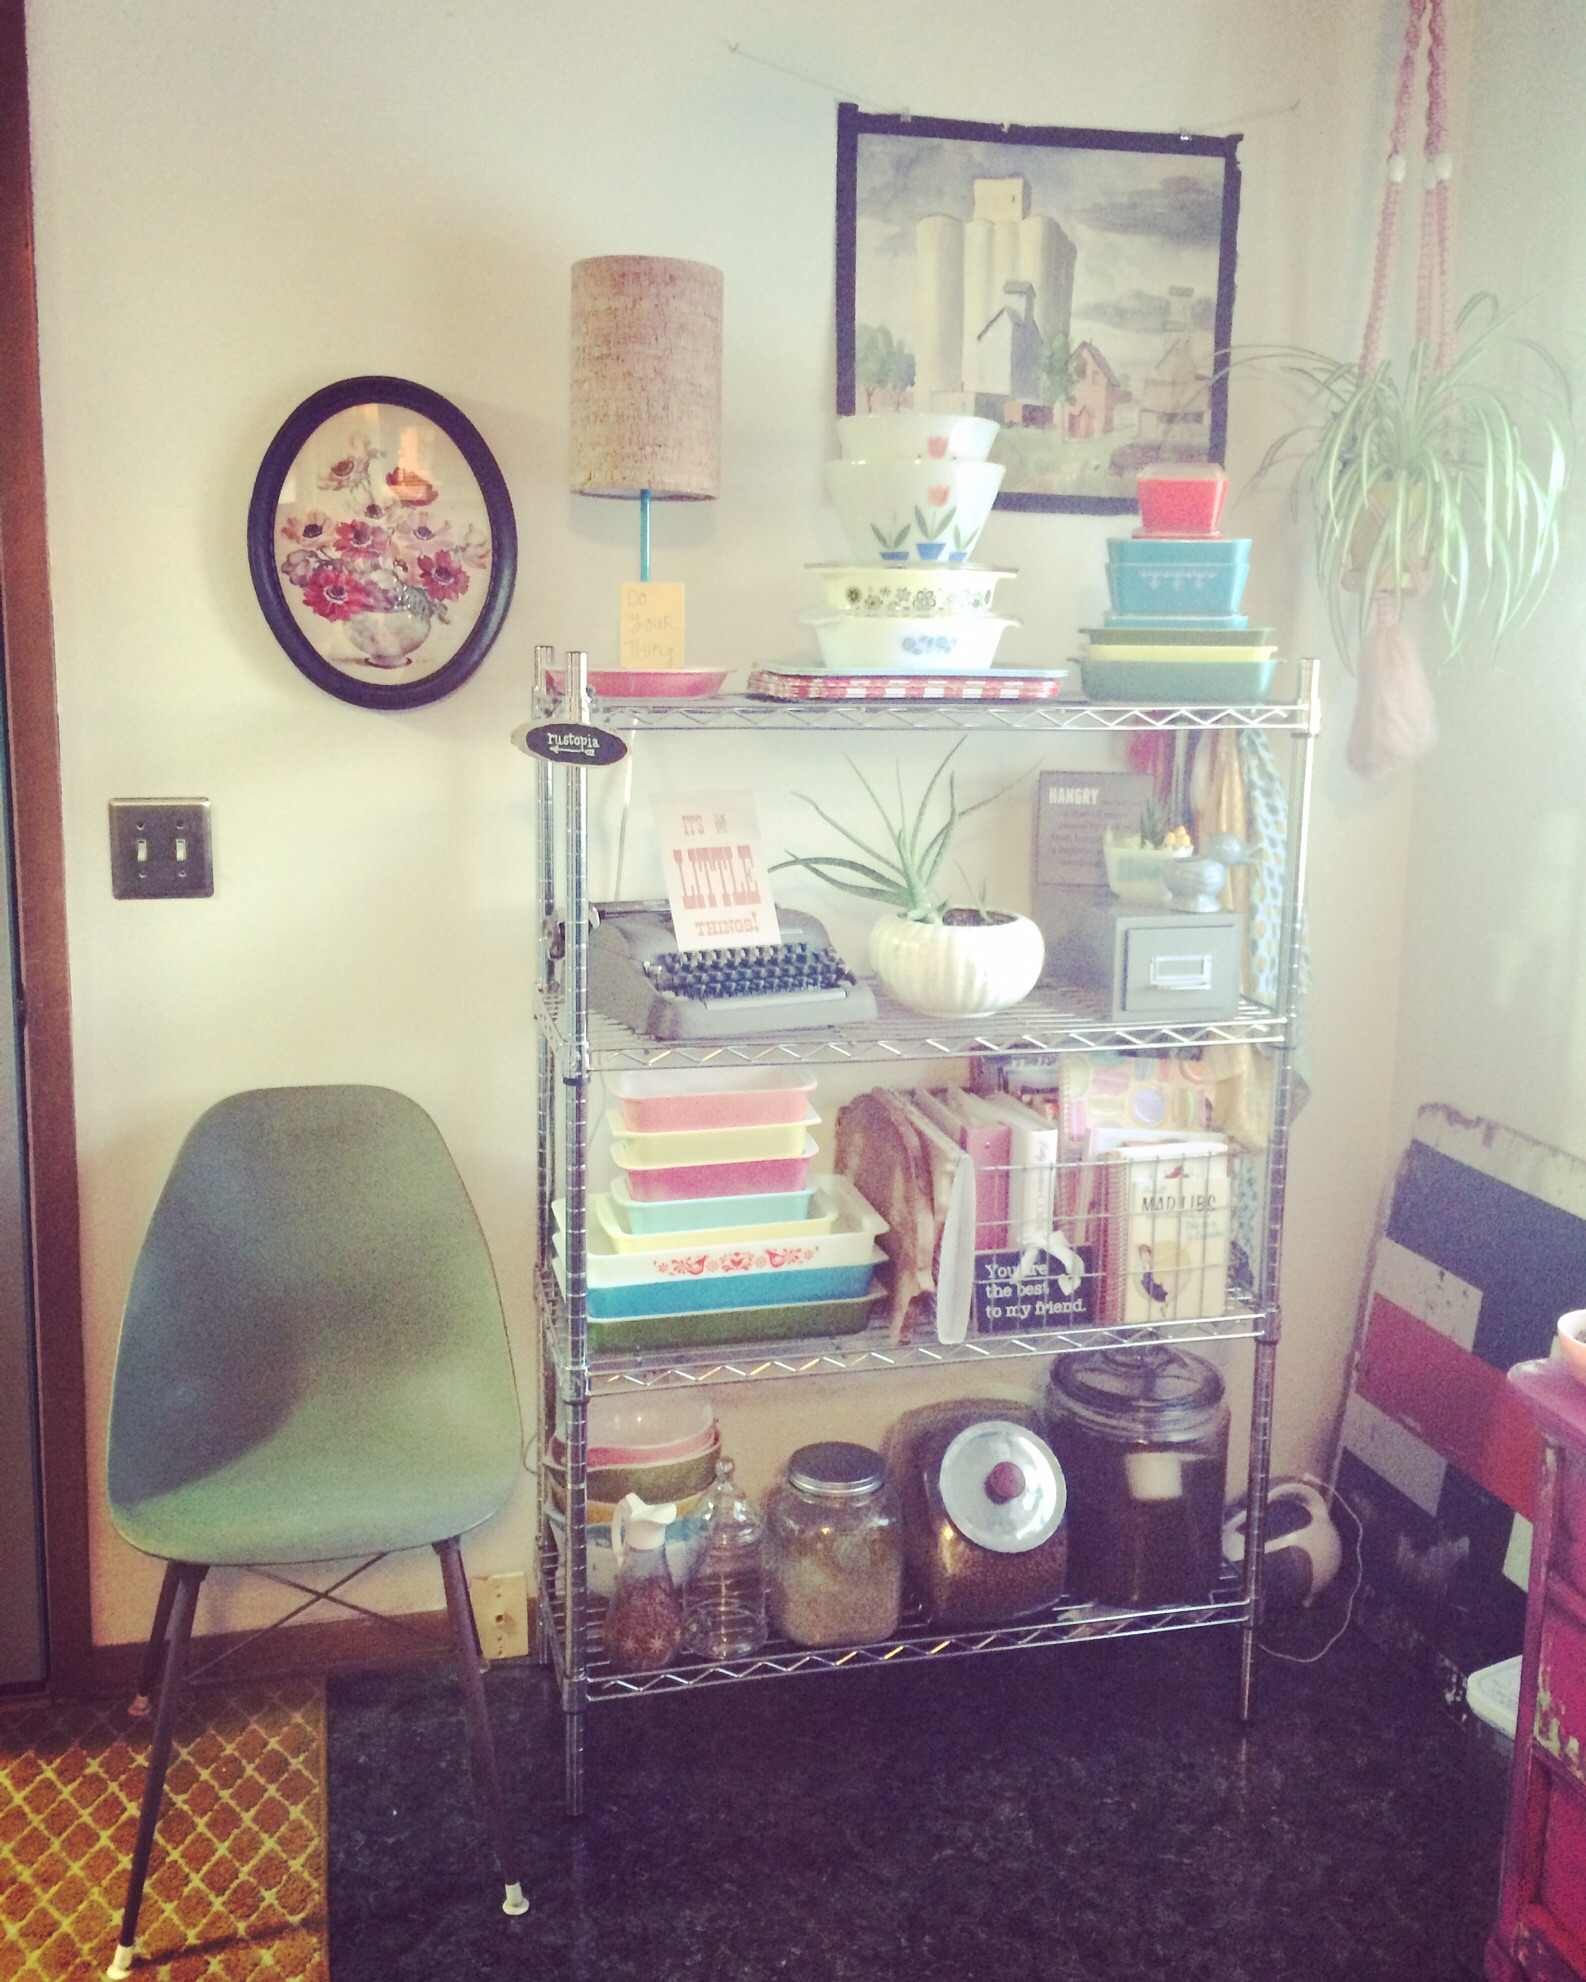 Vintage chair next to a metal shelving unit decorated with colorful vintage dishes.    RustopiaConsulting.com